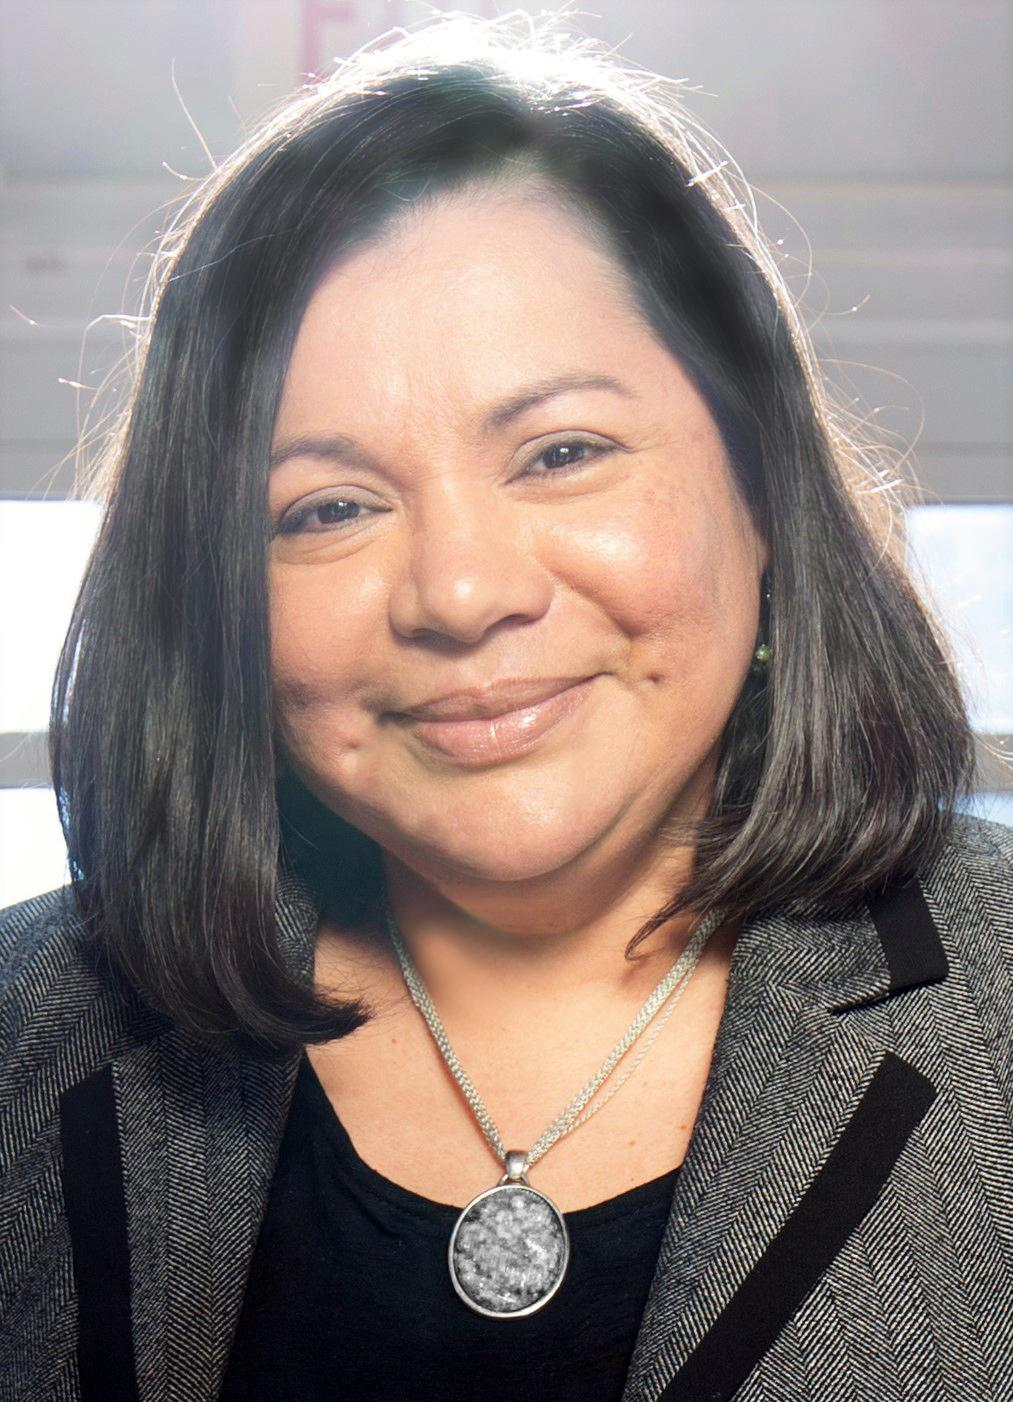 Picture of Nancy Calix, candidate for Central Region and current Assistant Extension Administrator for County Operations with Kentucky State University